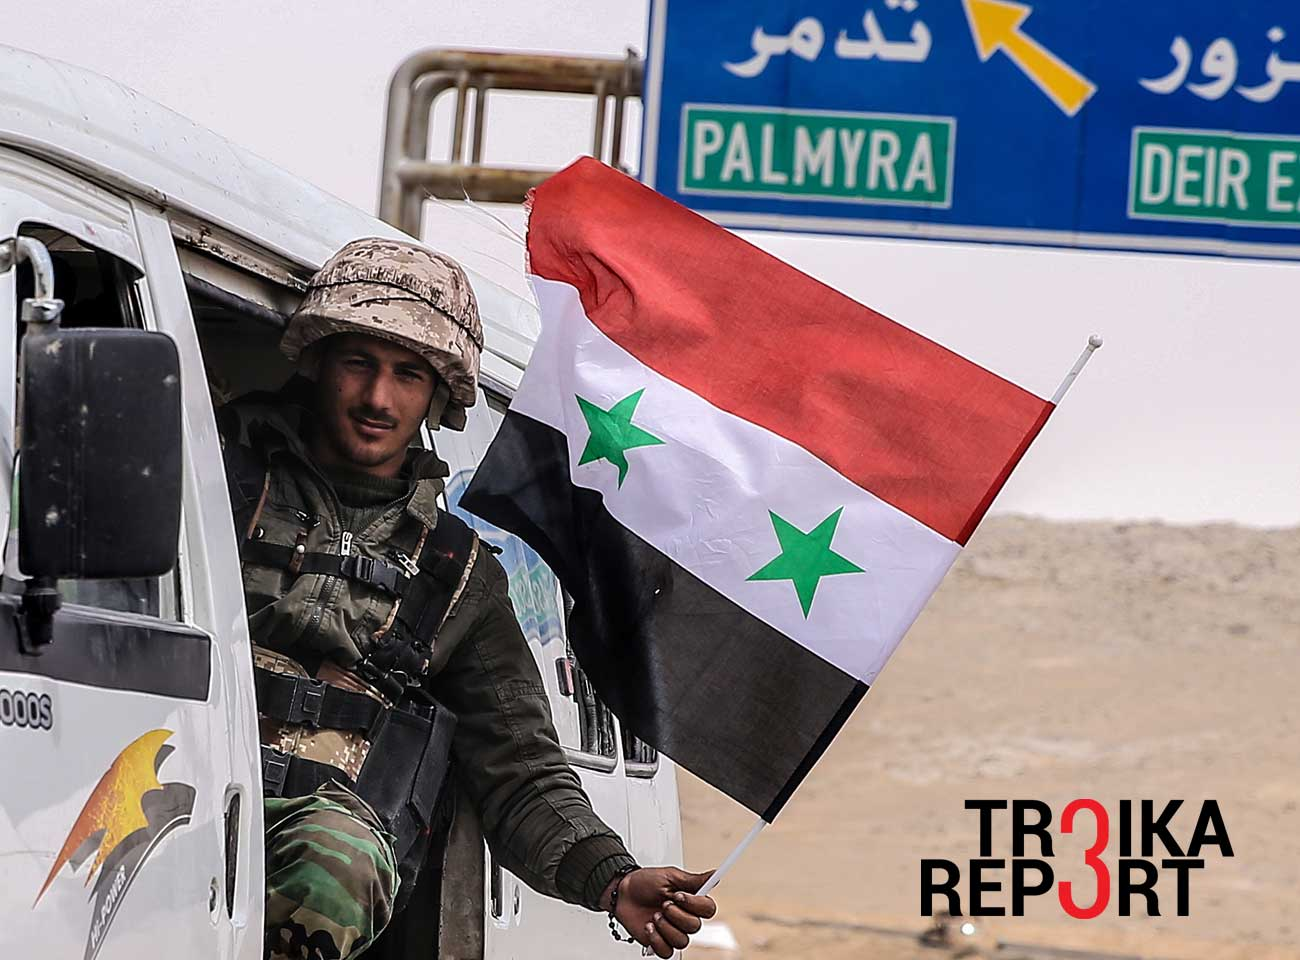 A Syrian government army soldier near the city of Palmyra, March 24, 2016.